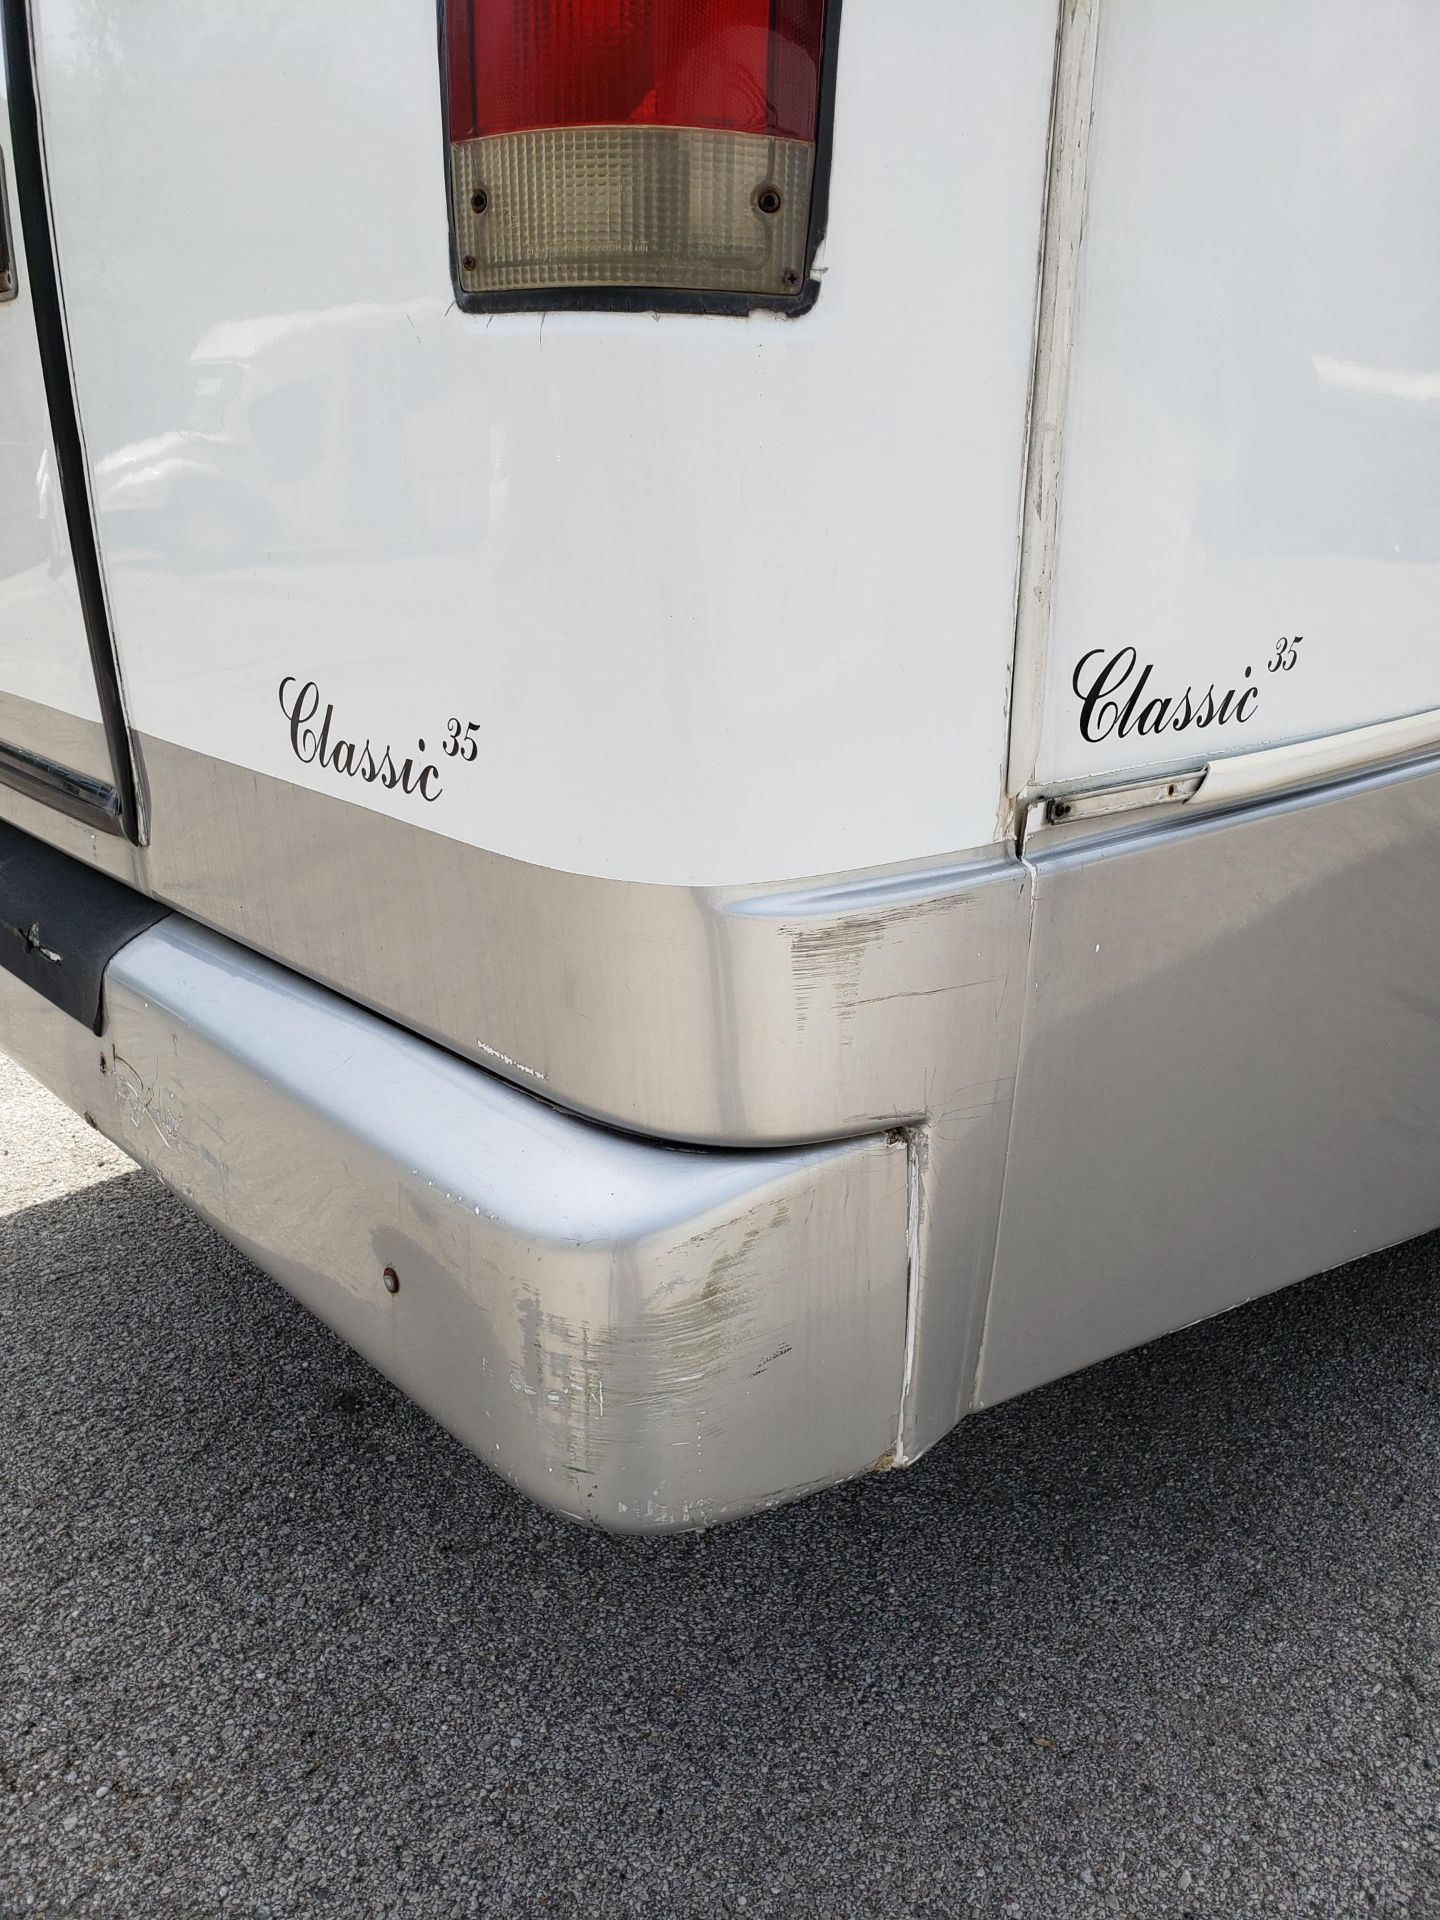 2006 Chevrolet C5500 30-Pass General Coach Champion Bus - Image 19 of 23